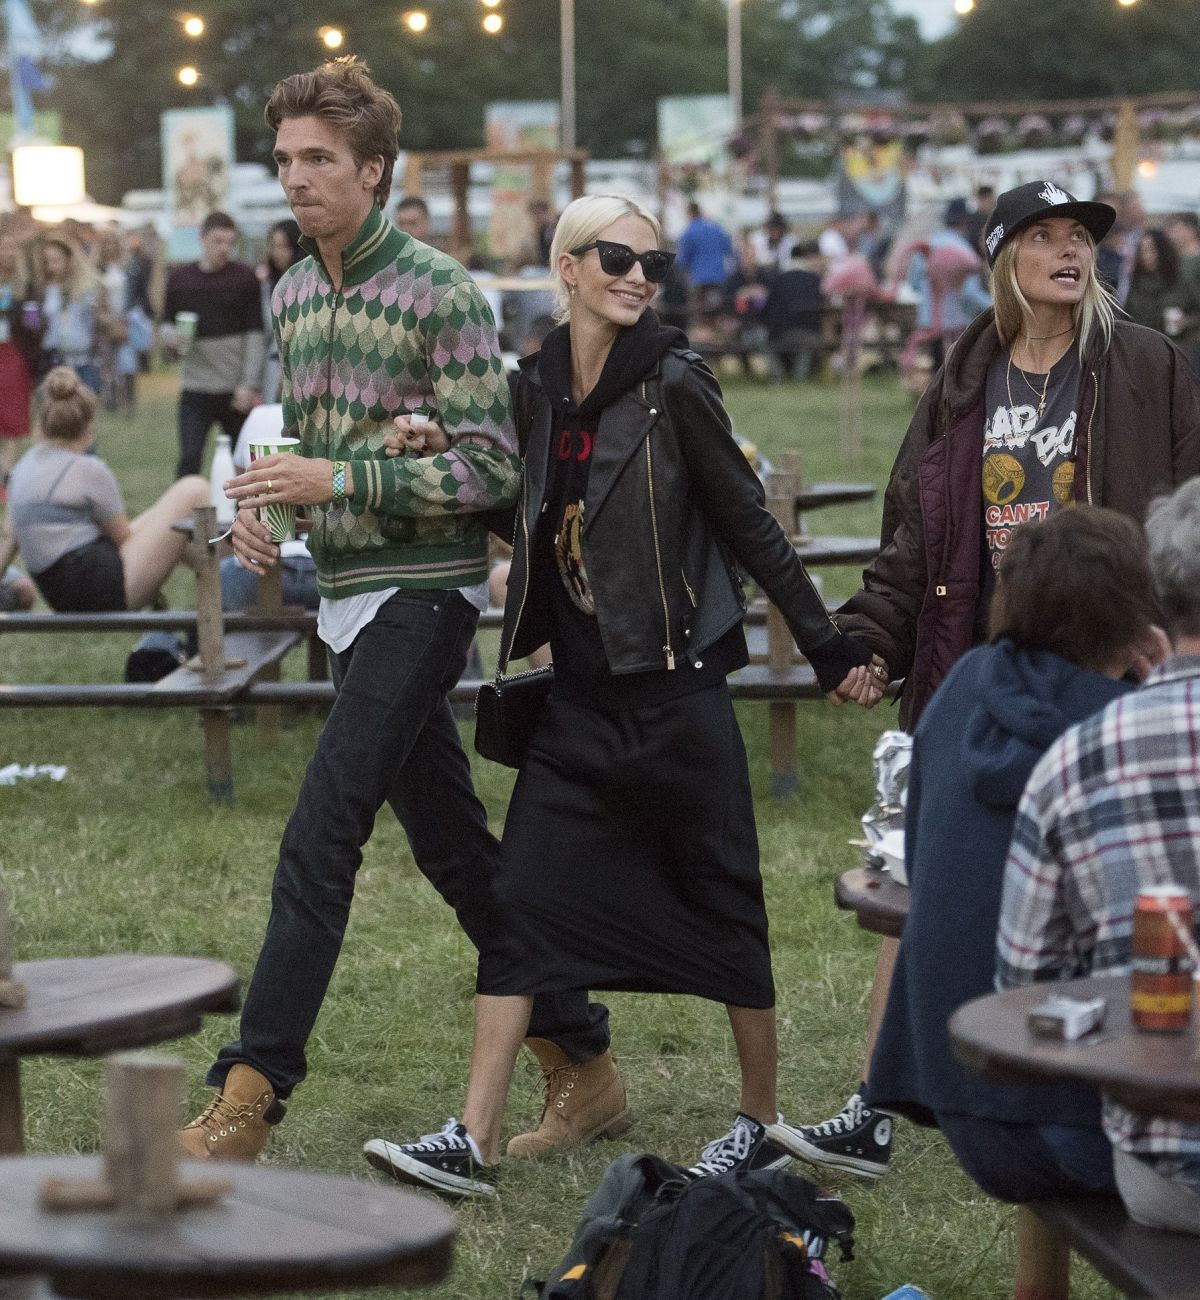 POPPY DELEVINGNE and James Cook at Glastonbury Festival 06/23/2017